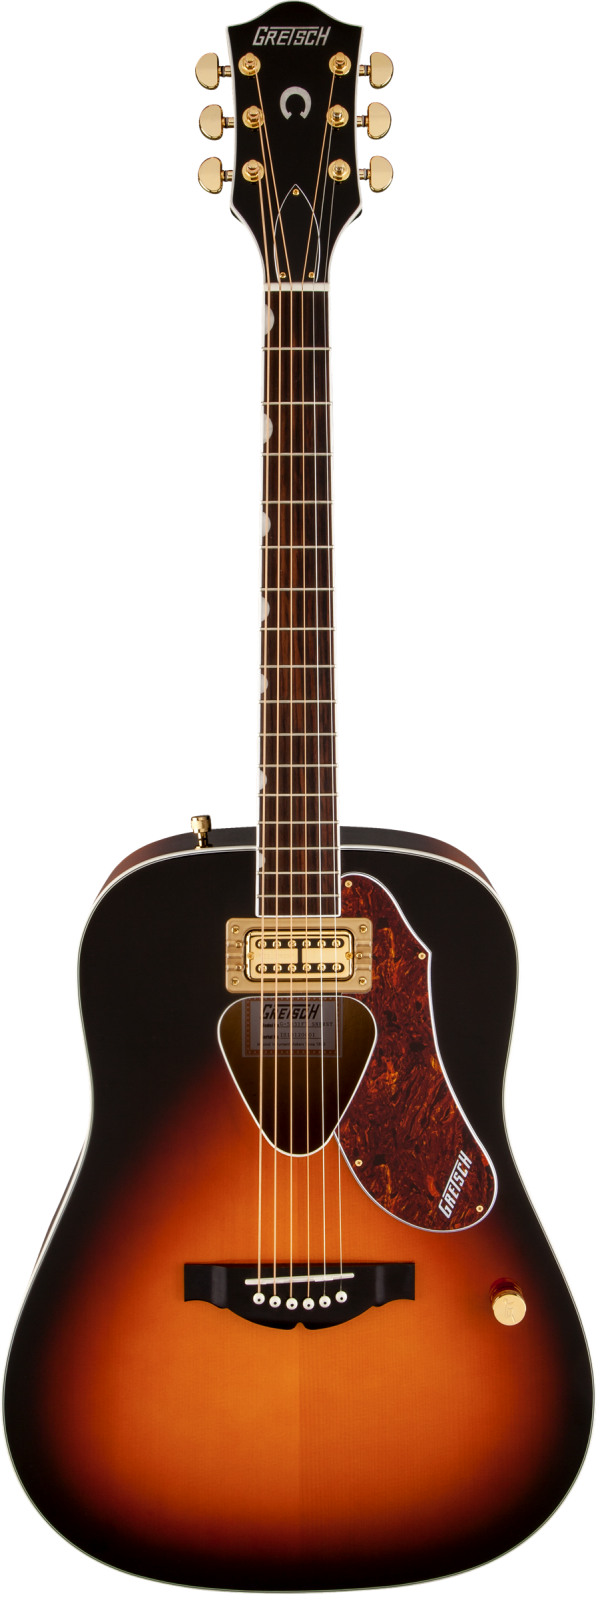 Gretsch G5031FT Rancher Dreadnought with Fideli'Tron Pickup